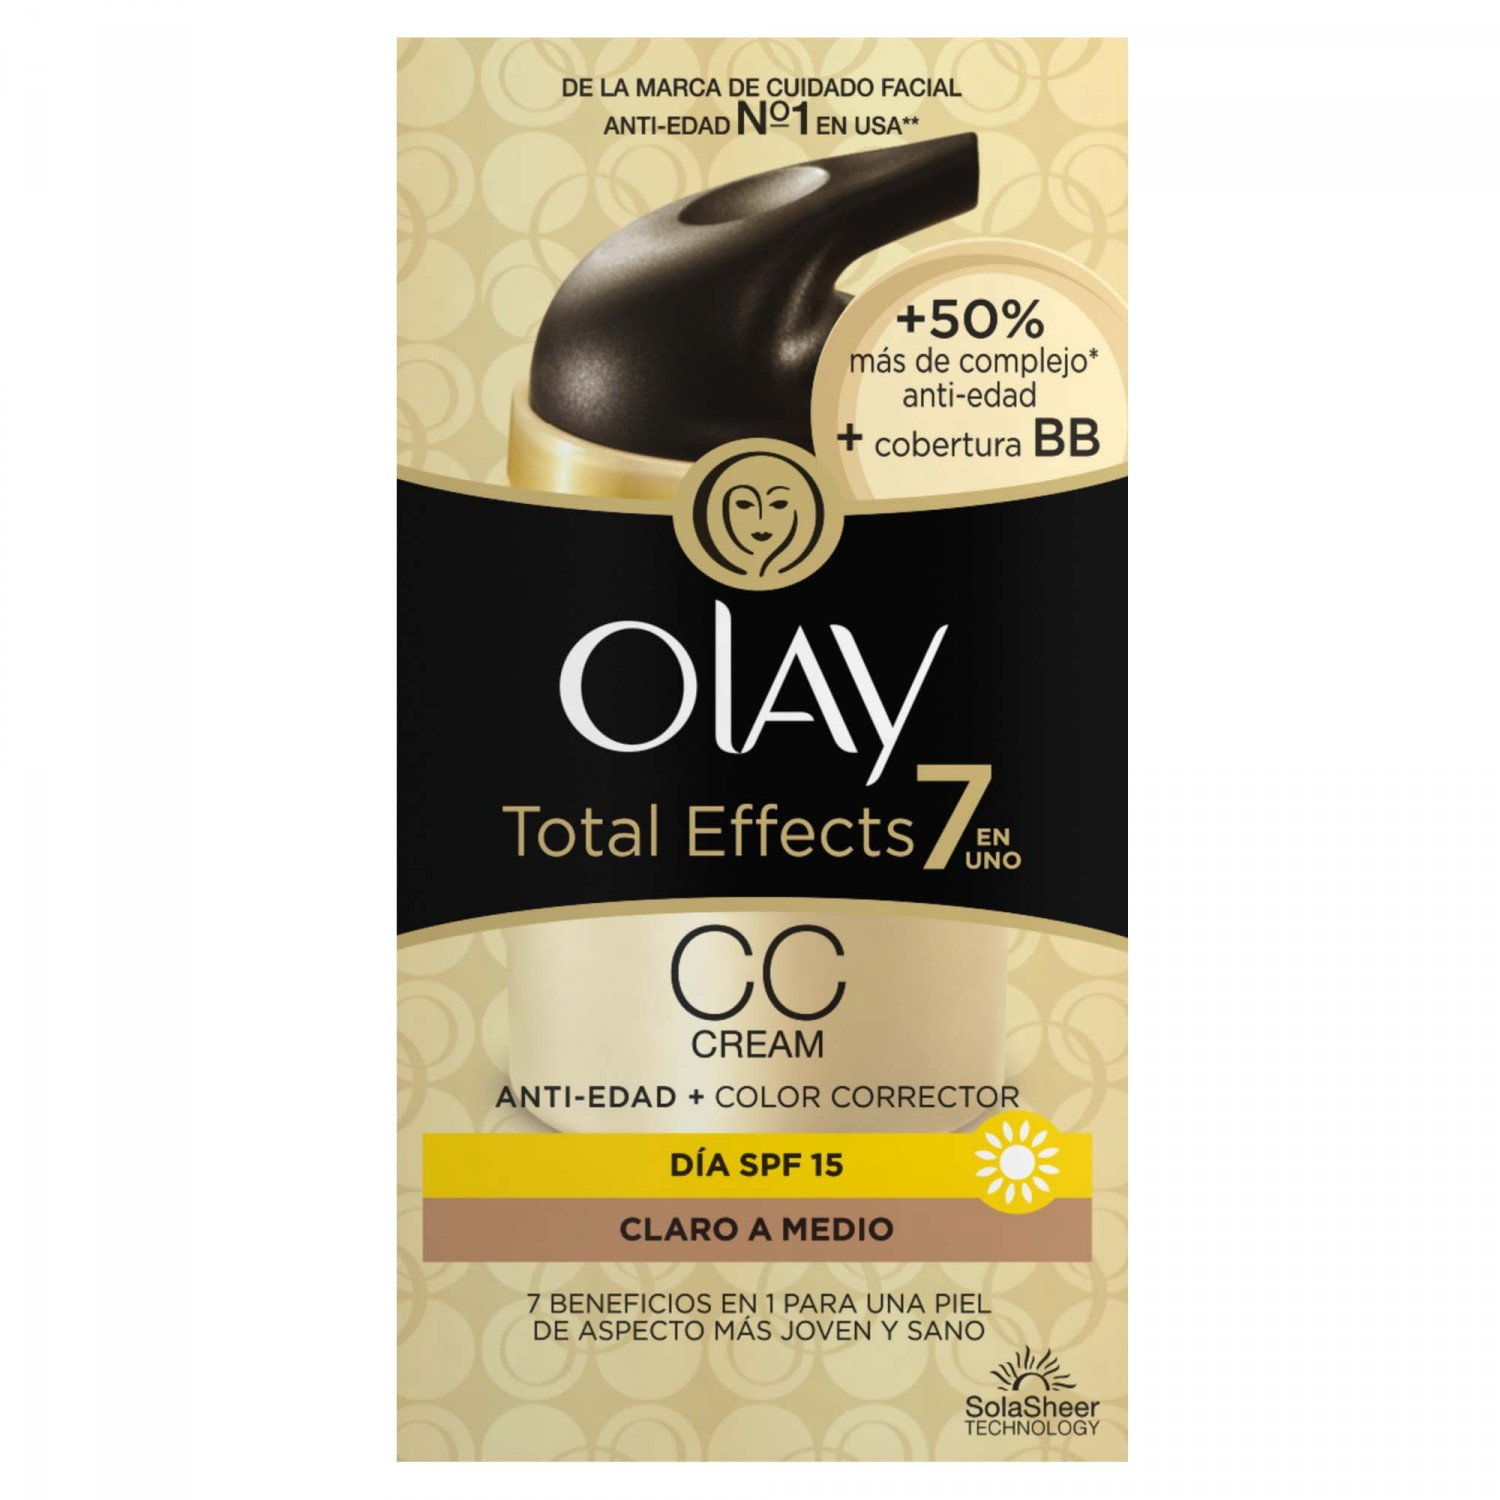 Olay total effects cc cream claro medio de 50ml.